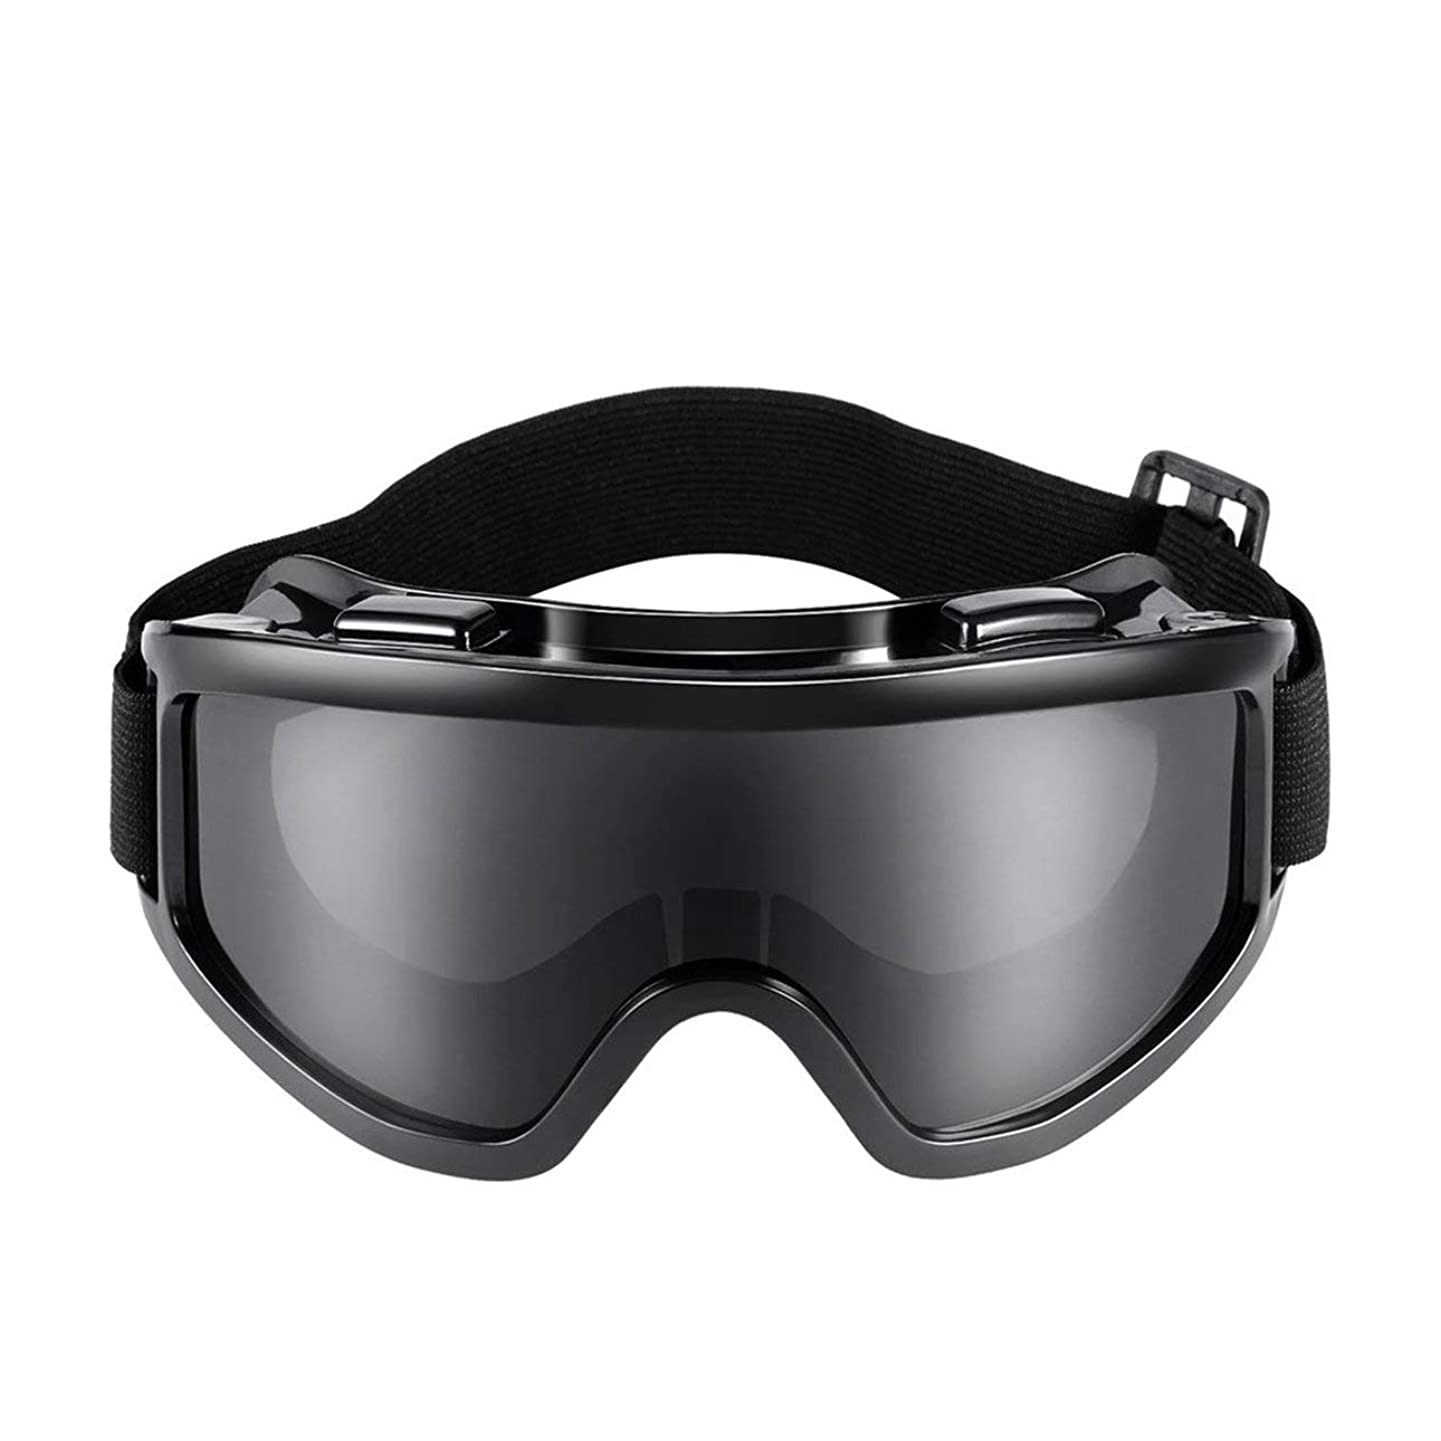 Liobaba PC Lens Goggles Protective Glasses Protect Eyes Mask Dust-Proof Wind-Proof